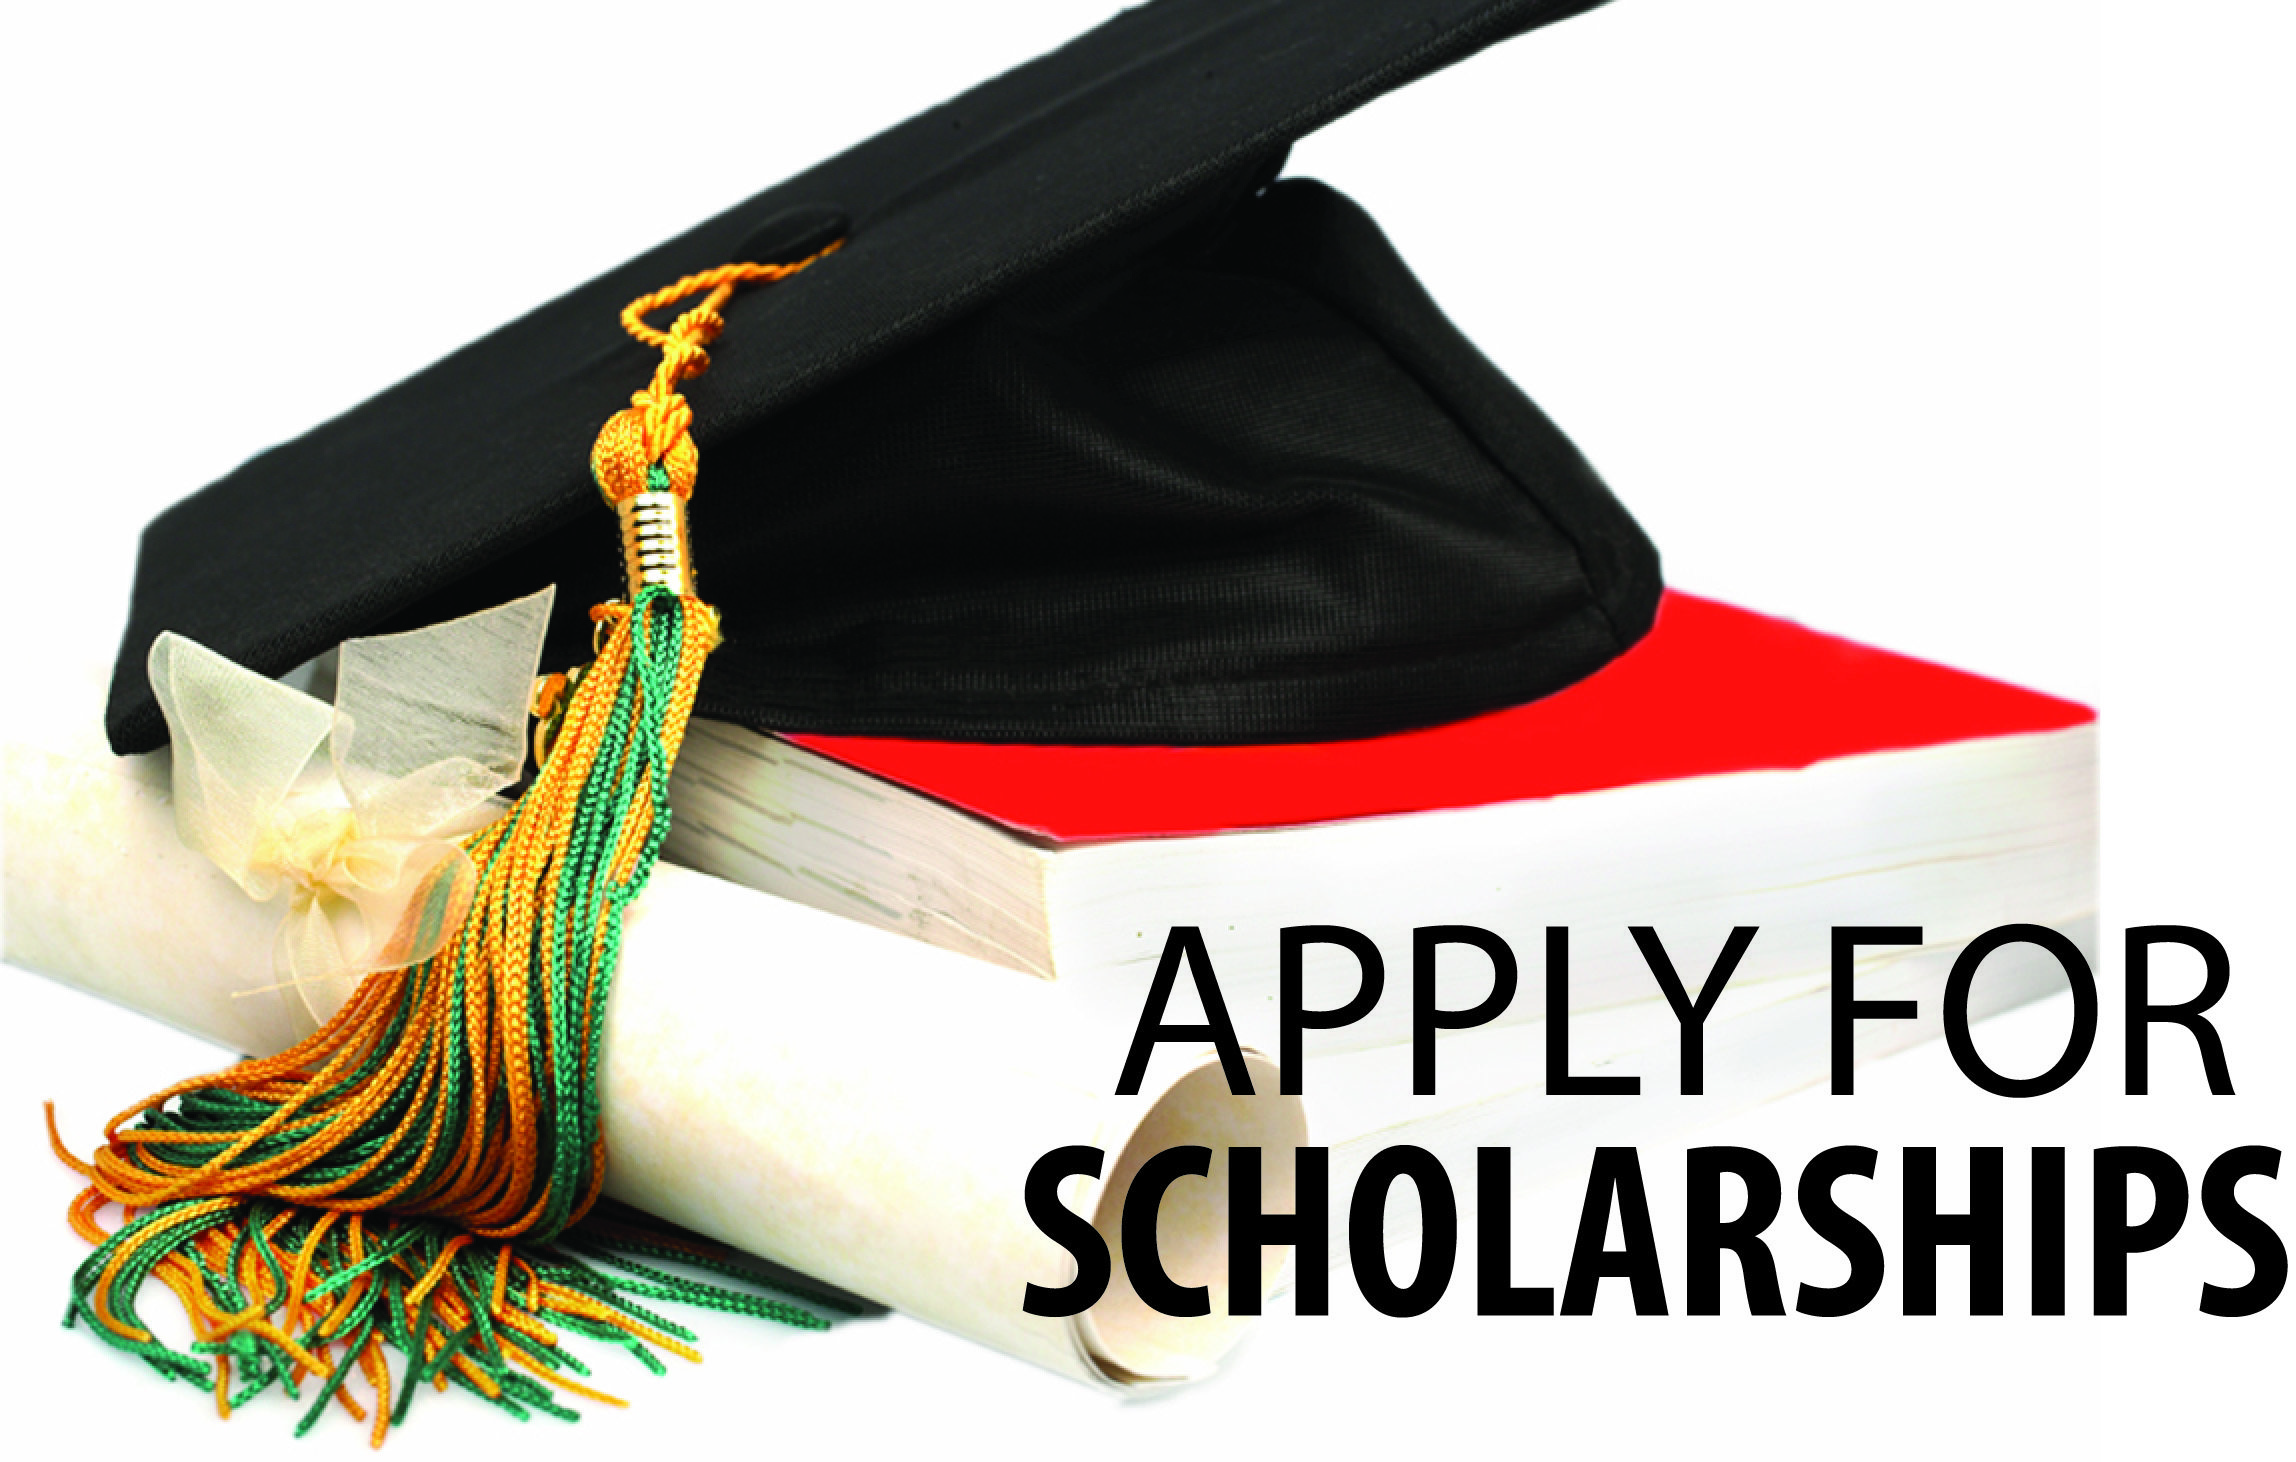 Tips to Remember While Applying For Scholarships